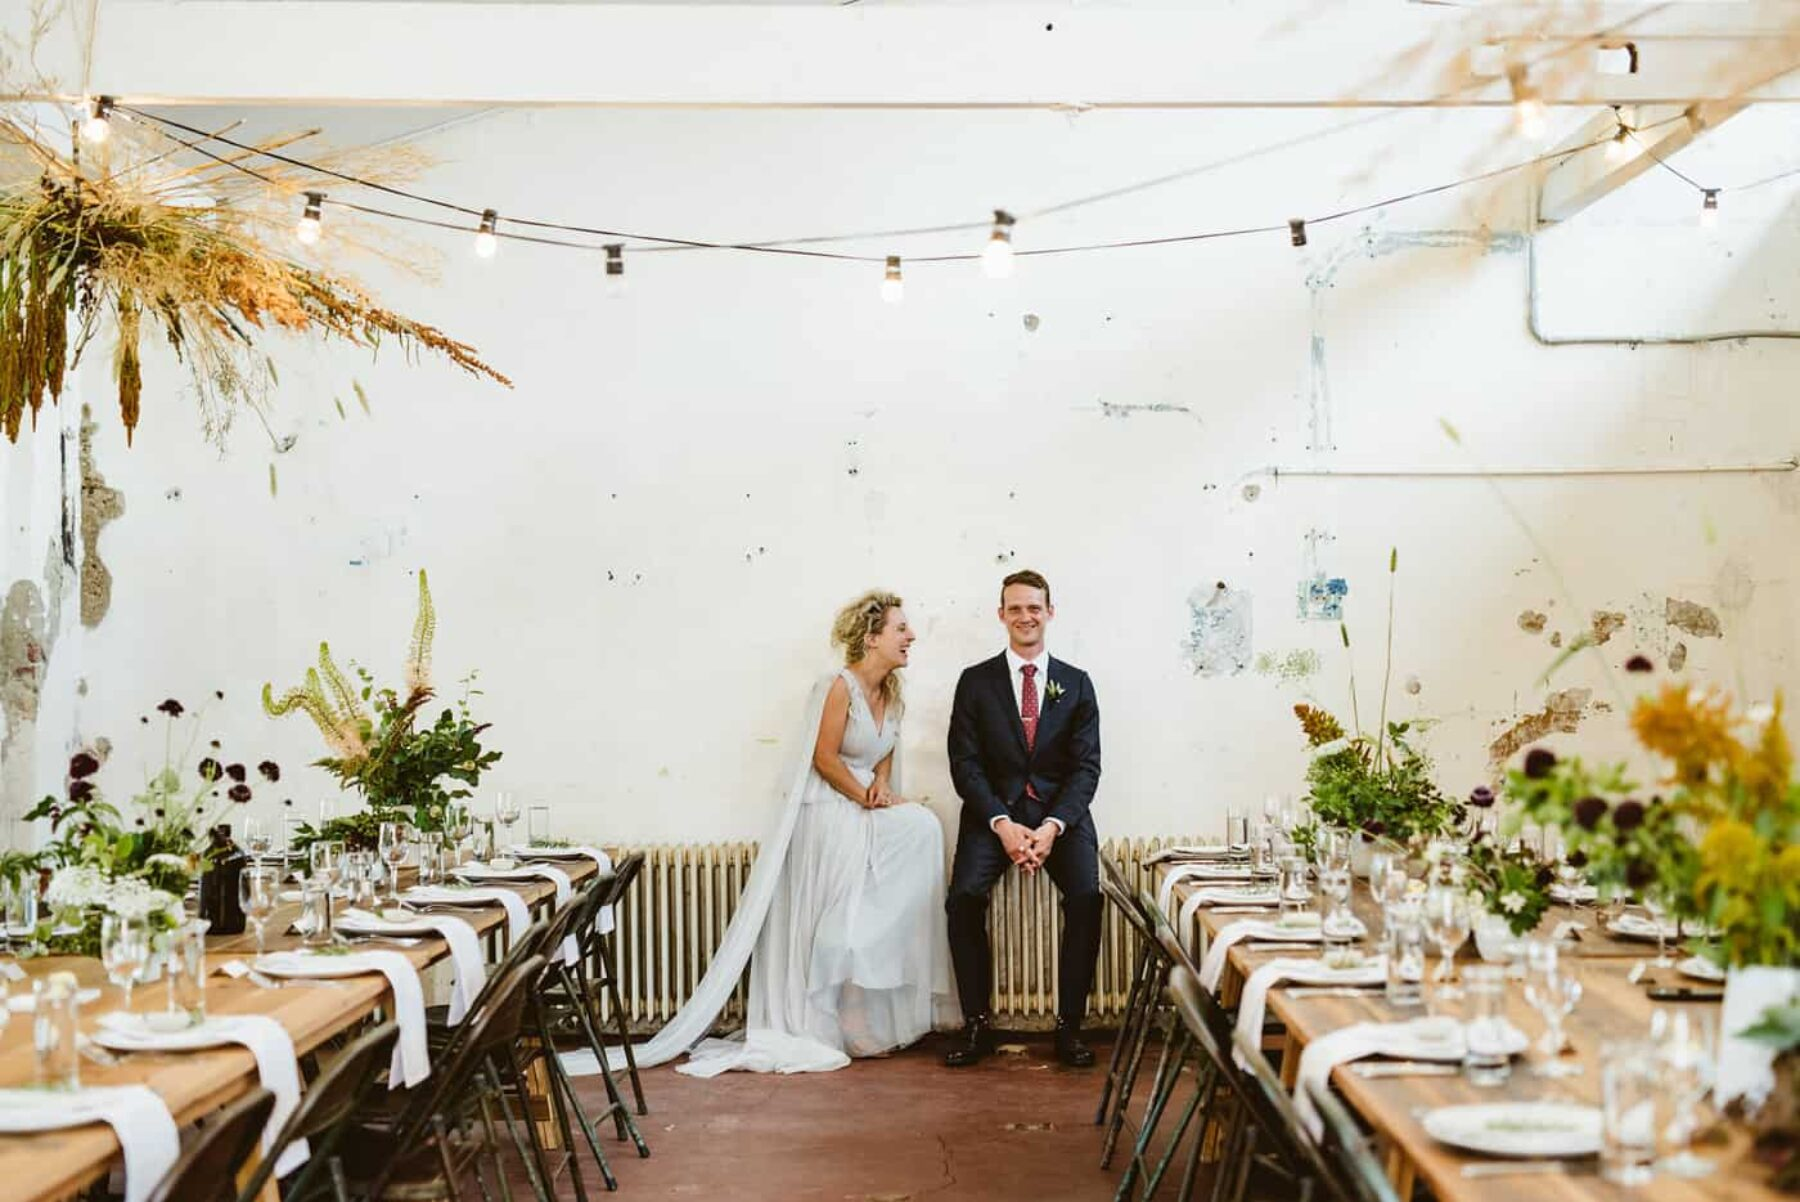 Grace & John's organic wedding at Butterland, VIC - photography by Motta Weddings